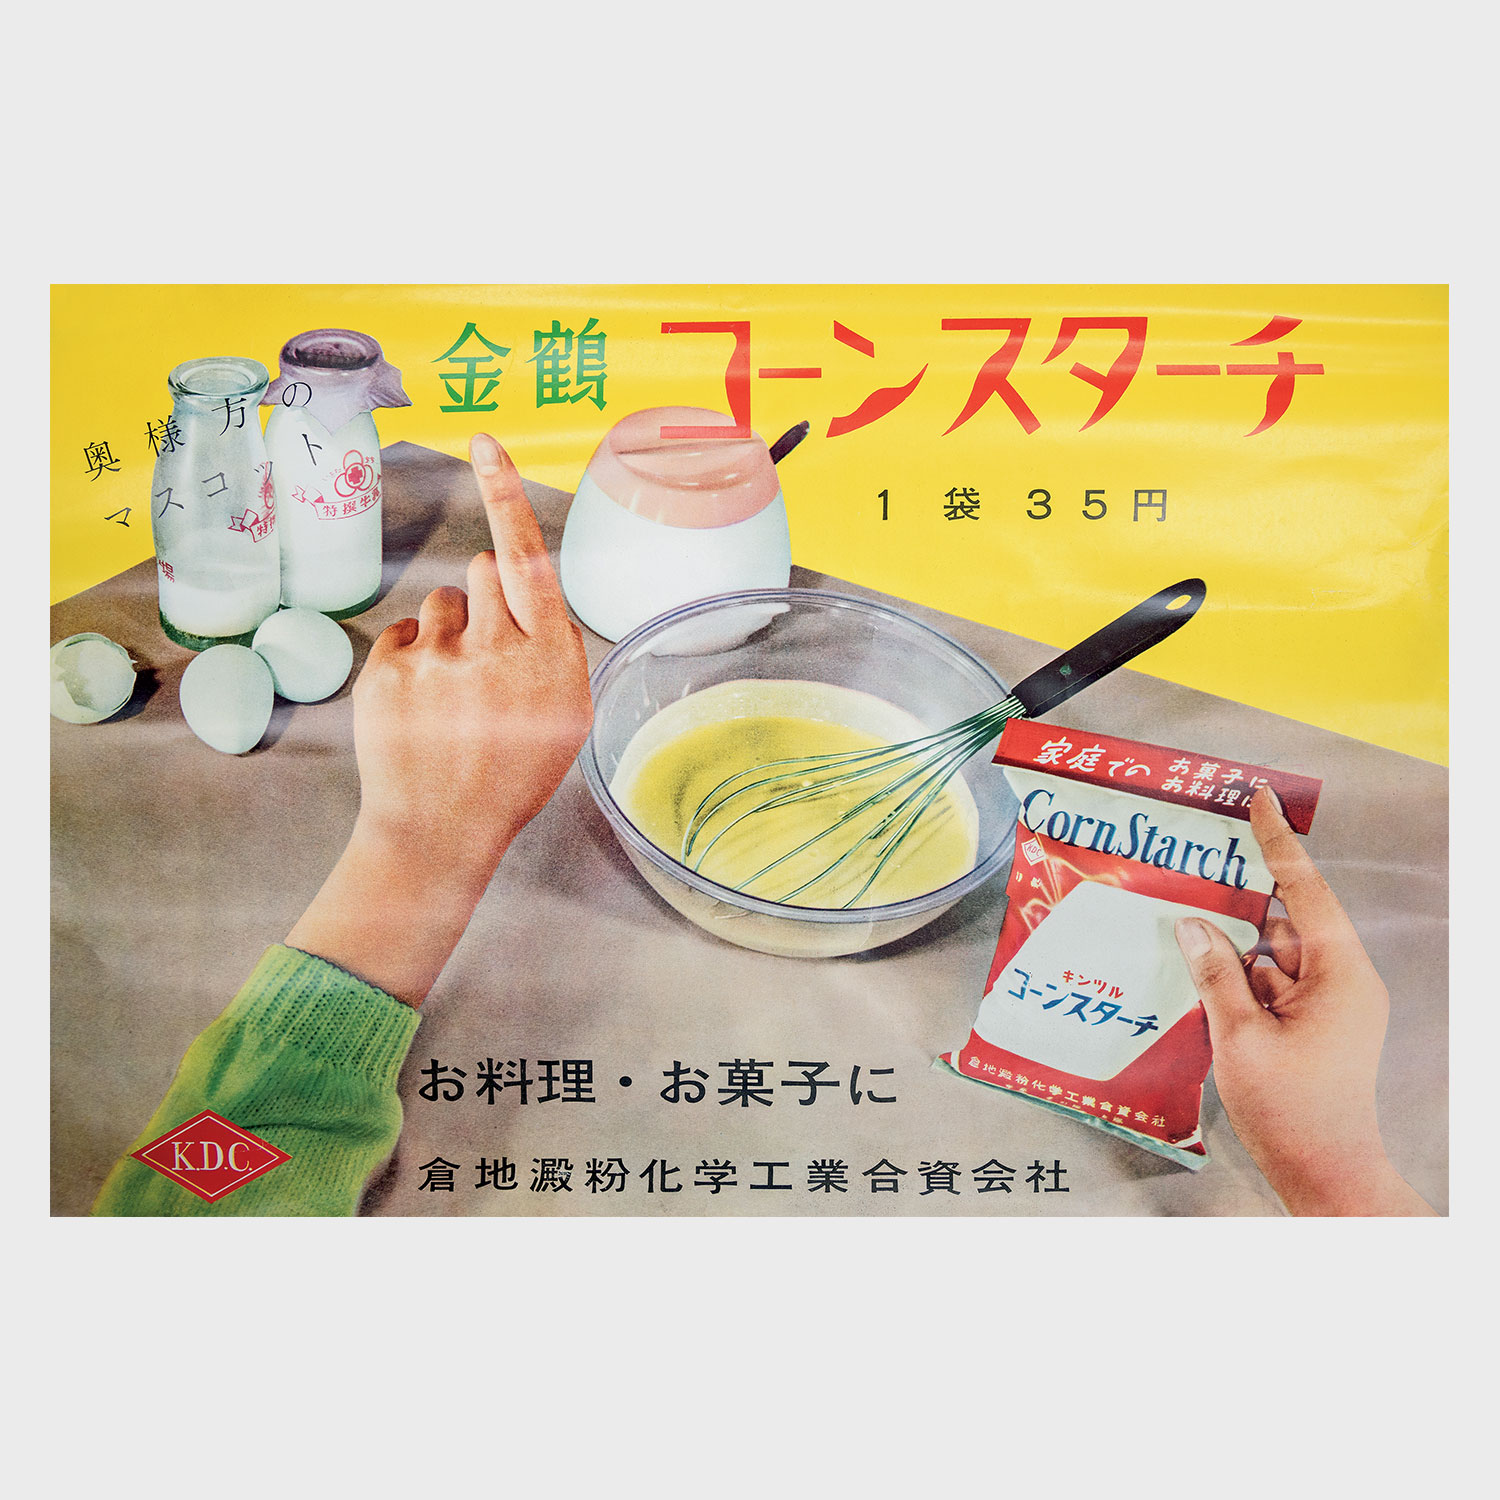 Photo of Japan Corn Starch Ad